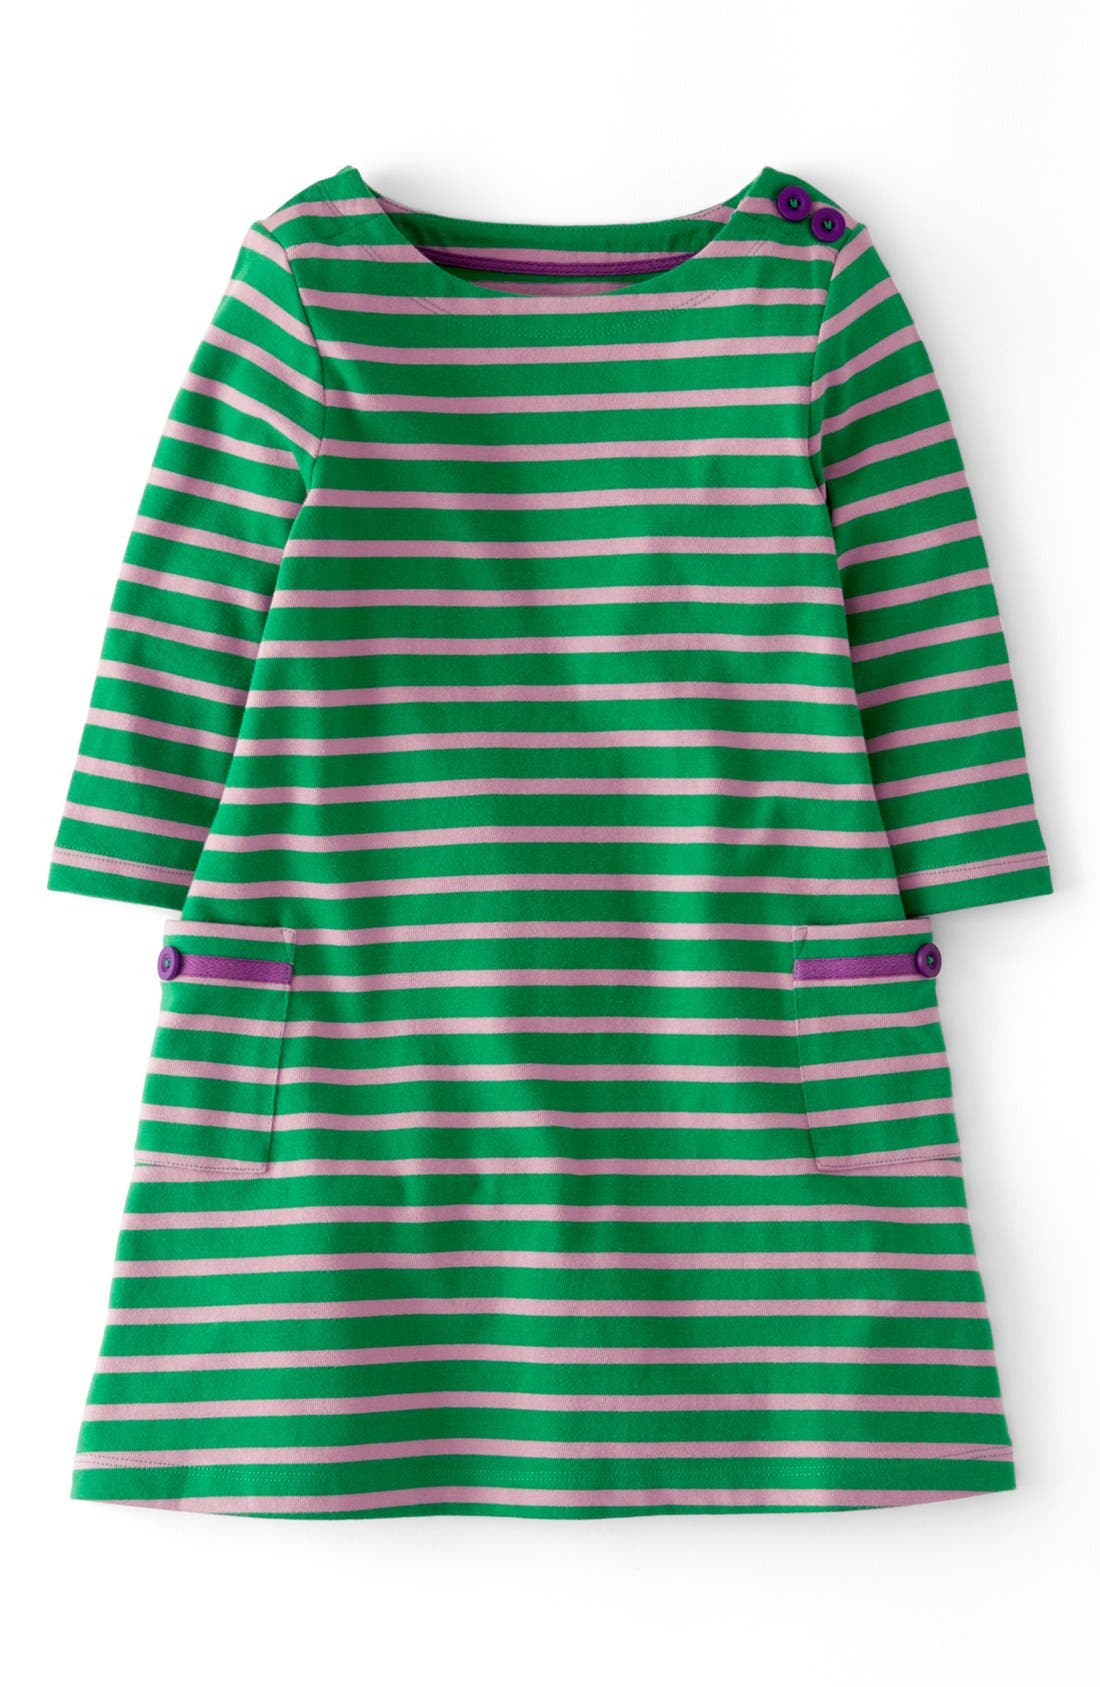 Main Image - Mini Boden Stripy Boatneck Dress (Toddler Girls, Little Girls & Big Girls)(Online Only)